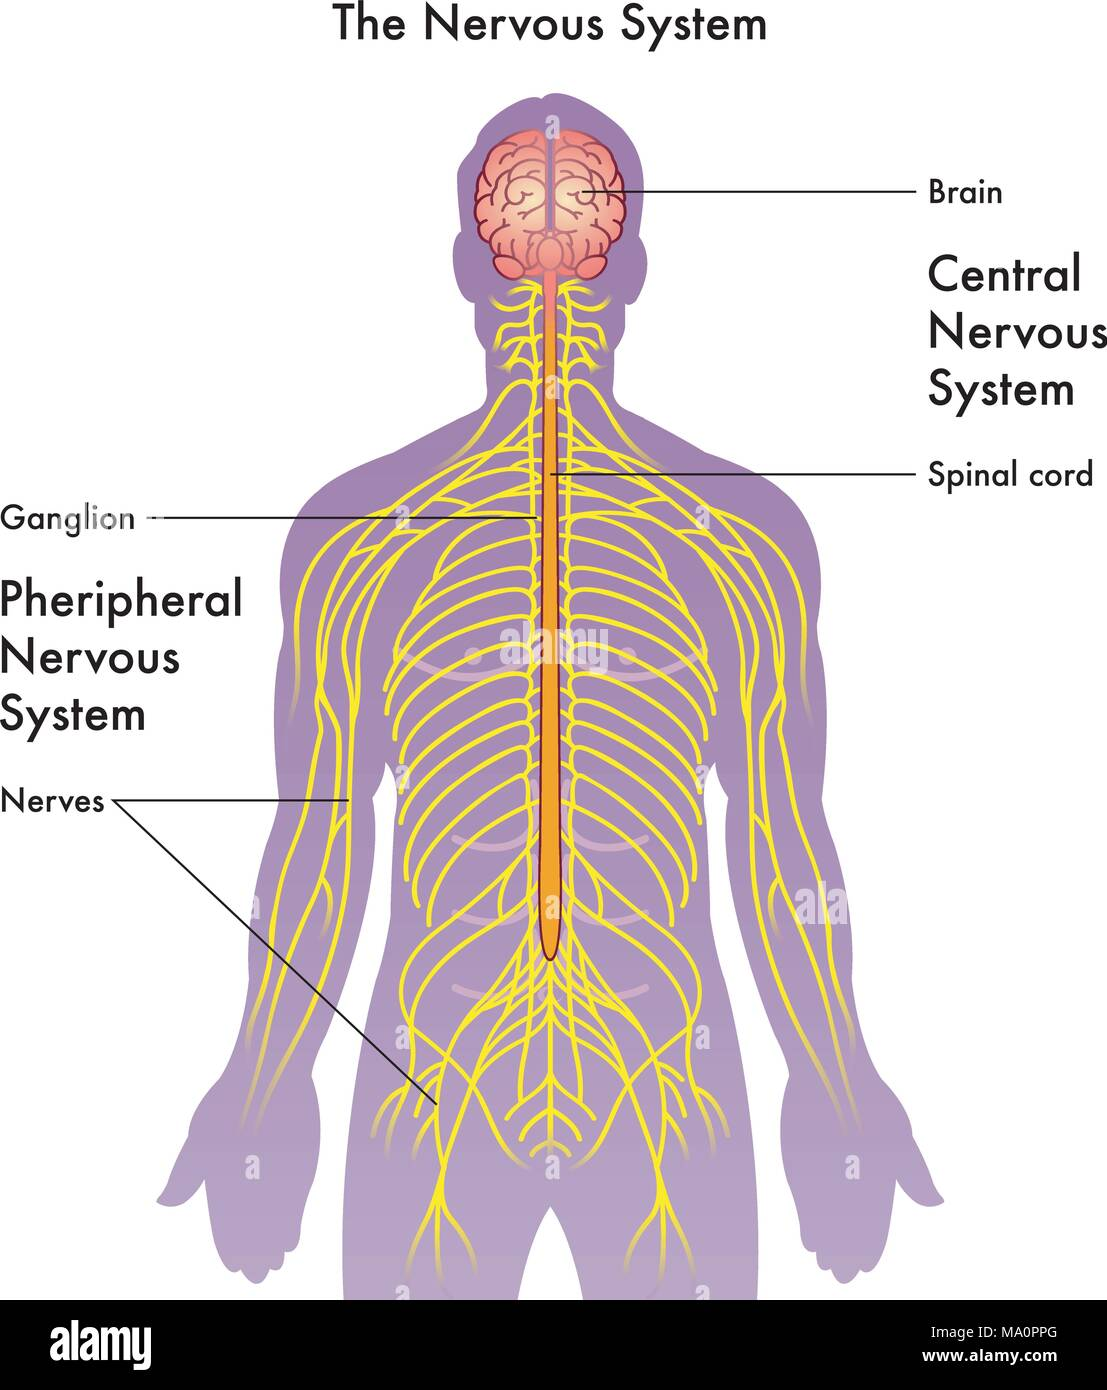 hight resolution of vector medical illustration of the nervous system on a white background stock image